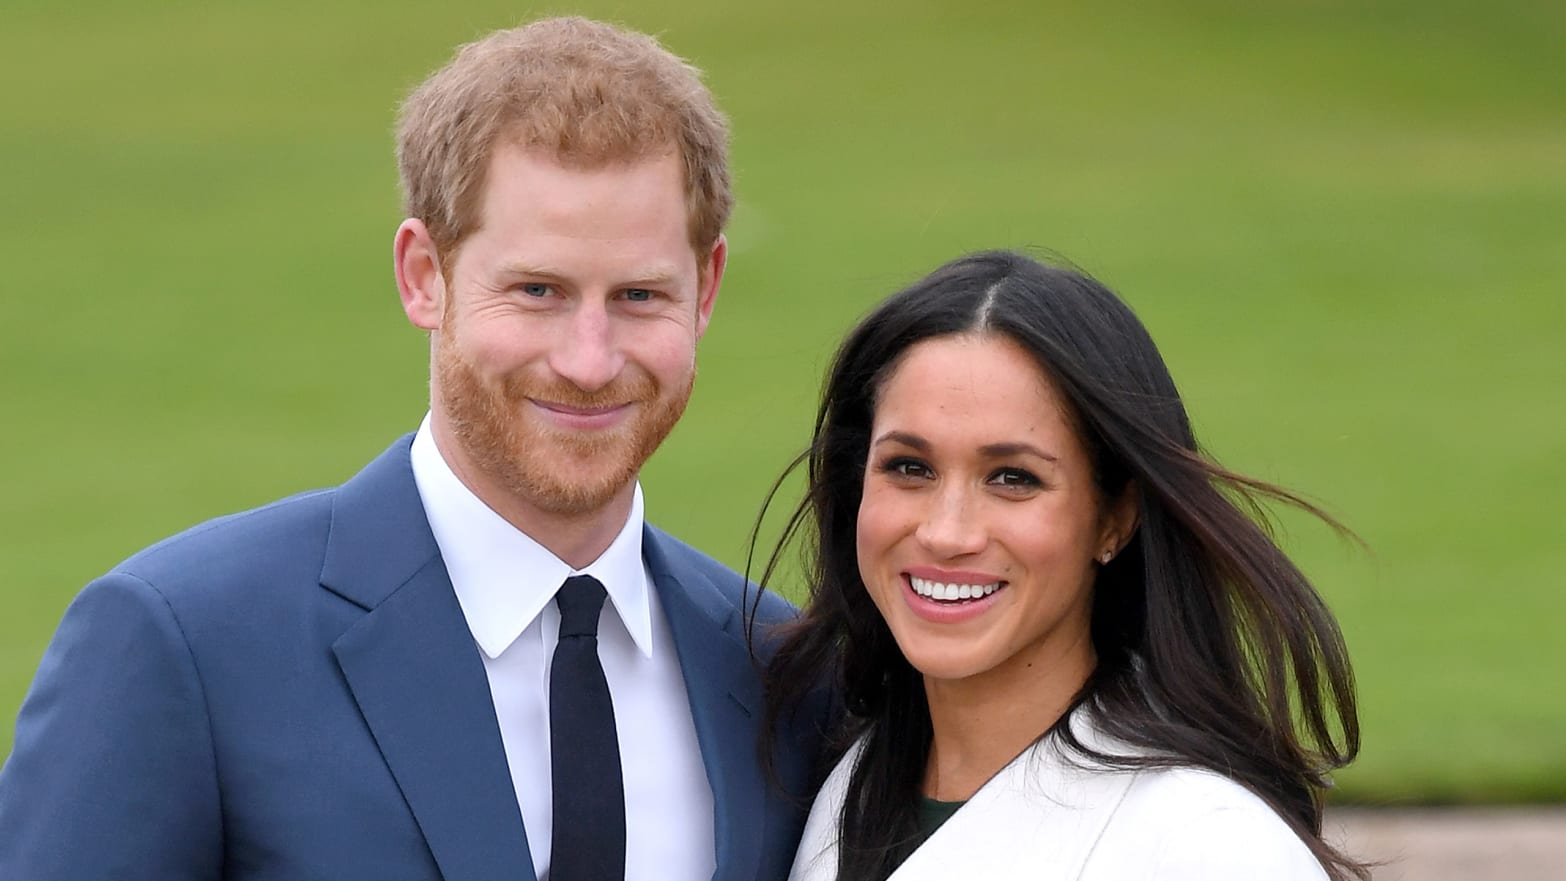 d720ed57d2500 Karwai Tang/Getty. As details of preparations for the nuptials of Prince  Harry and Meghan Markle ...